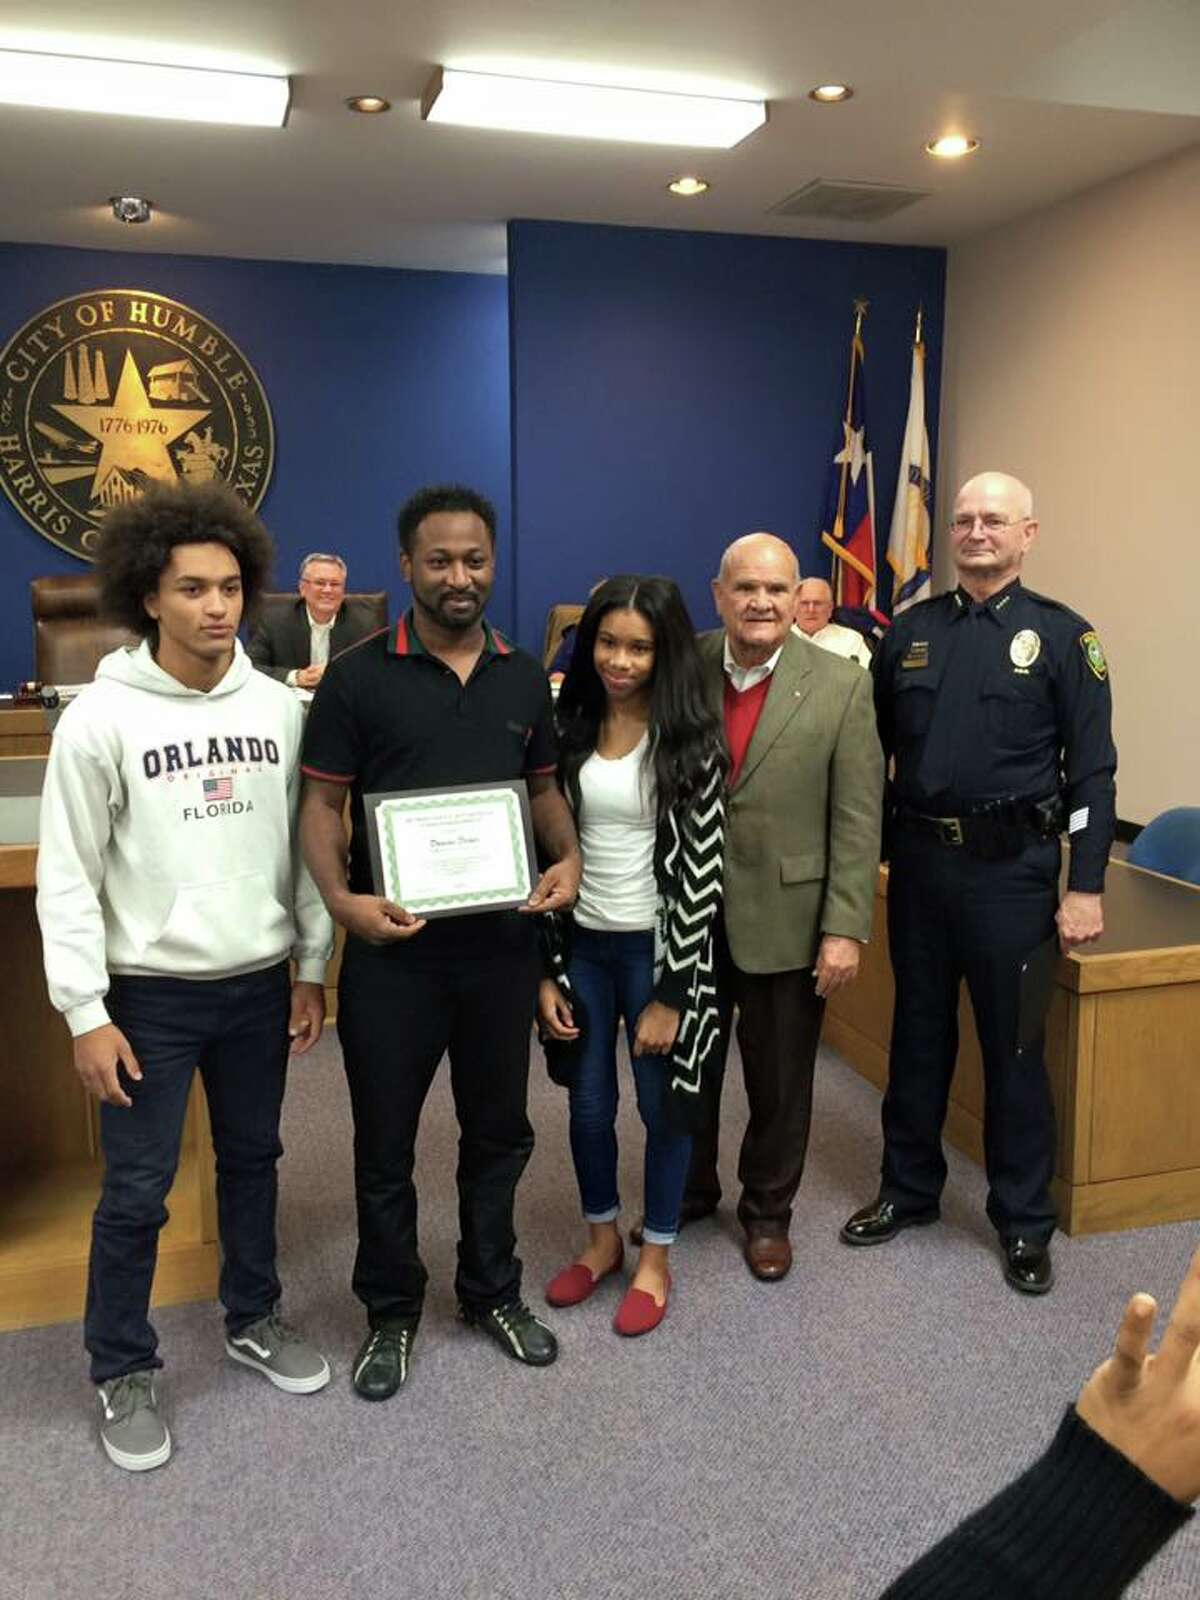 The good Samaritans were honored for their quick thinking during the city of Humble Council meeting Thursday, Dec. 8. Decuir was presented with a certificate from the Humble Police Department and the city of Humble Mayor Merle Aaron; Beard was unable to attend the meeting.